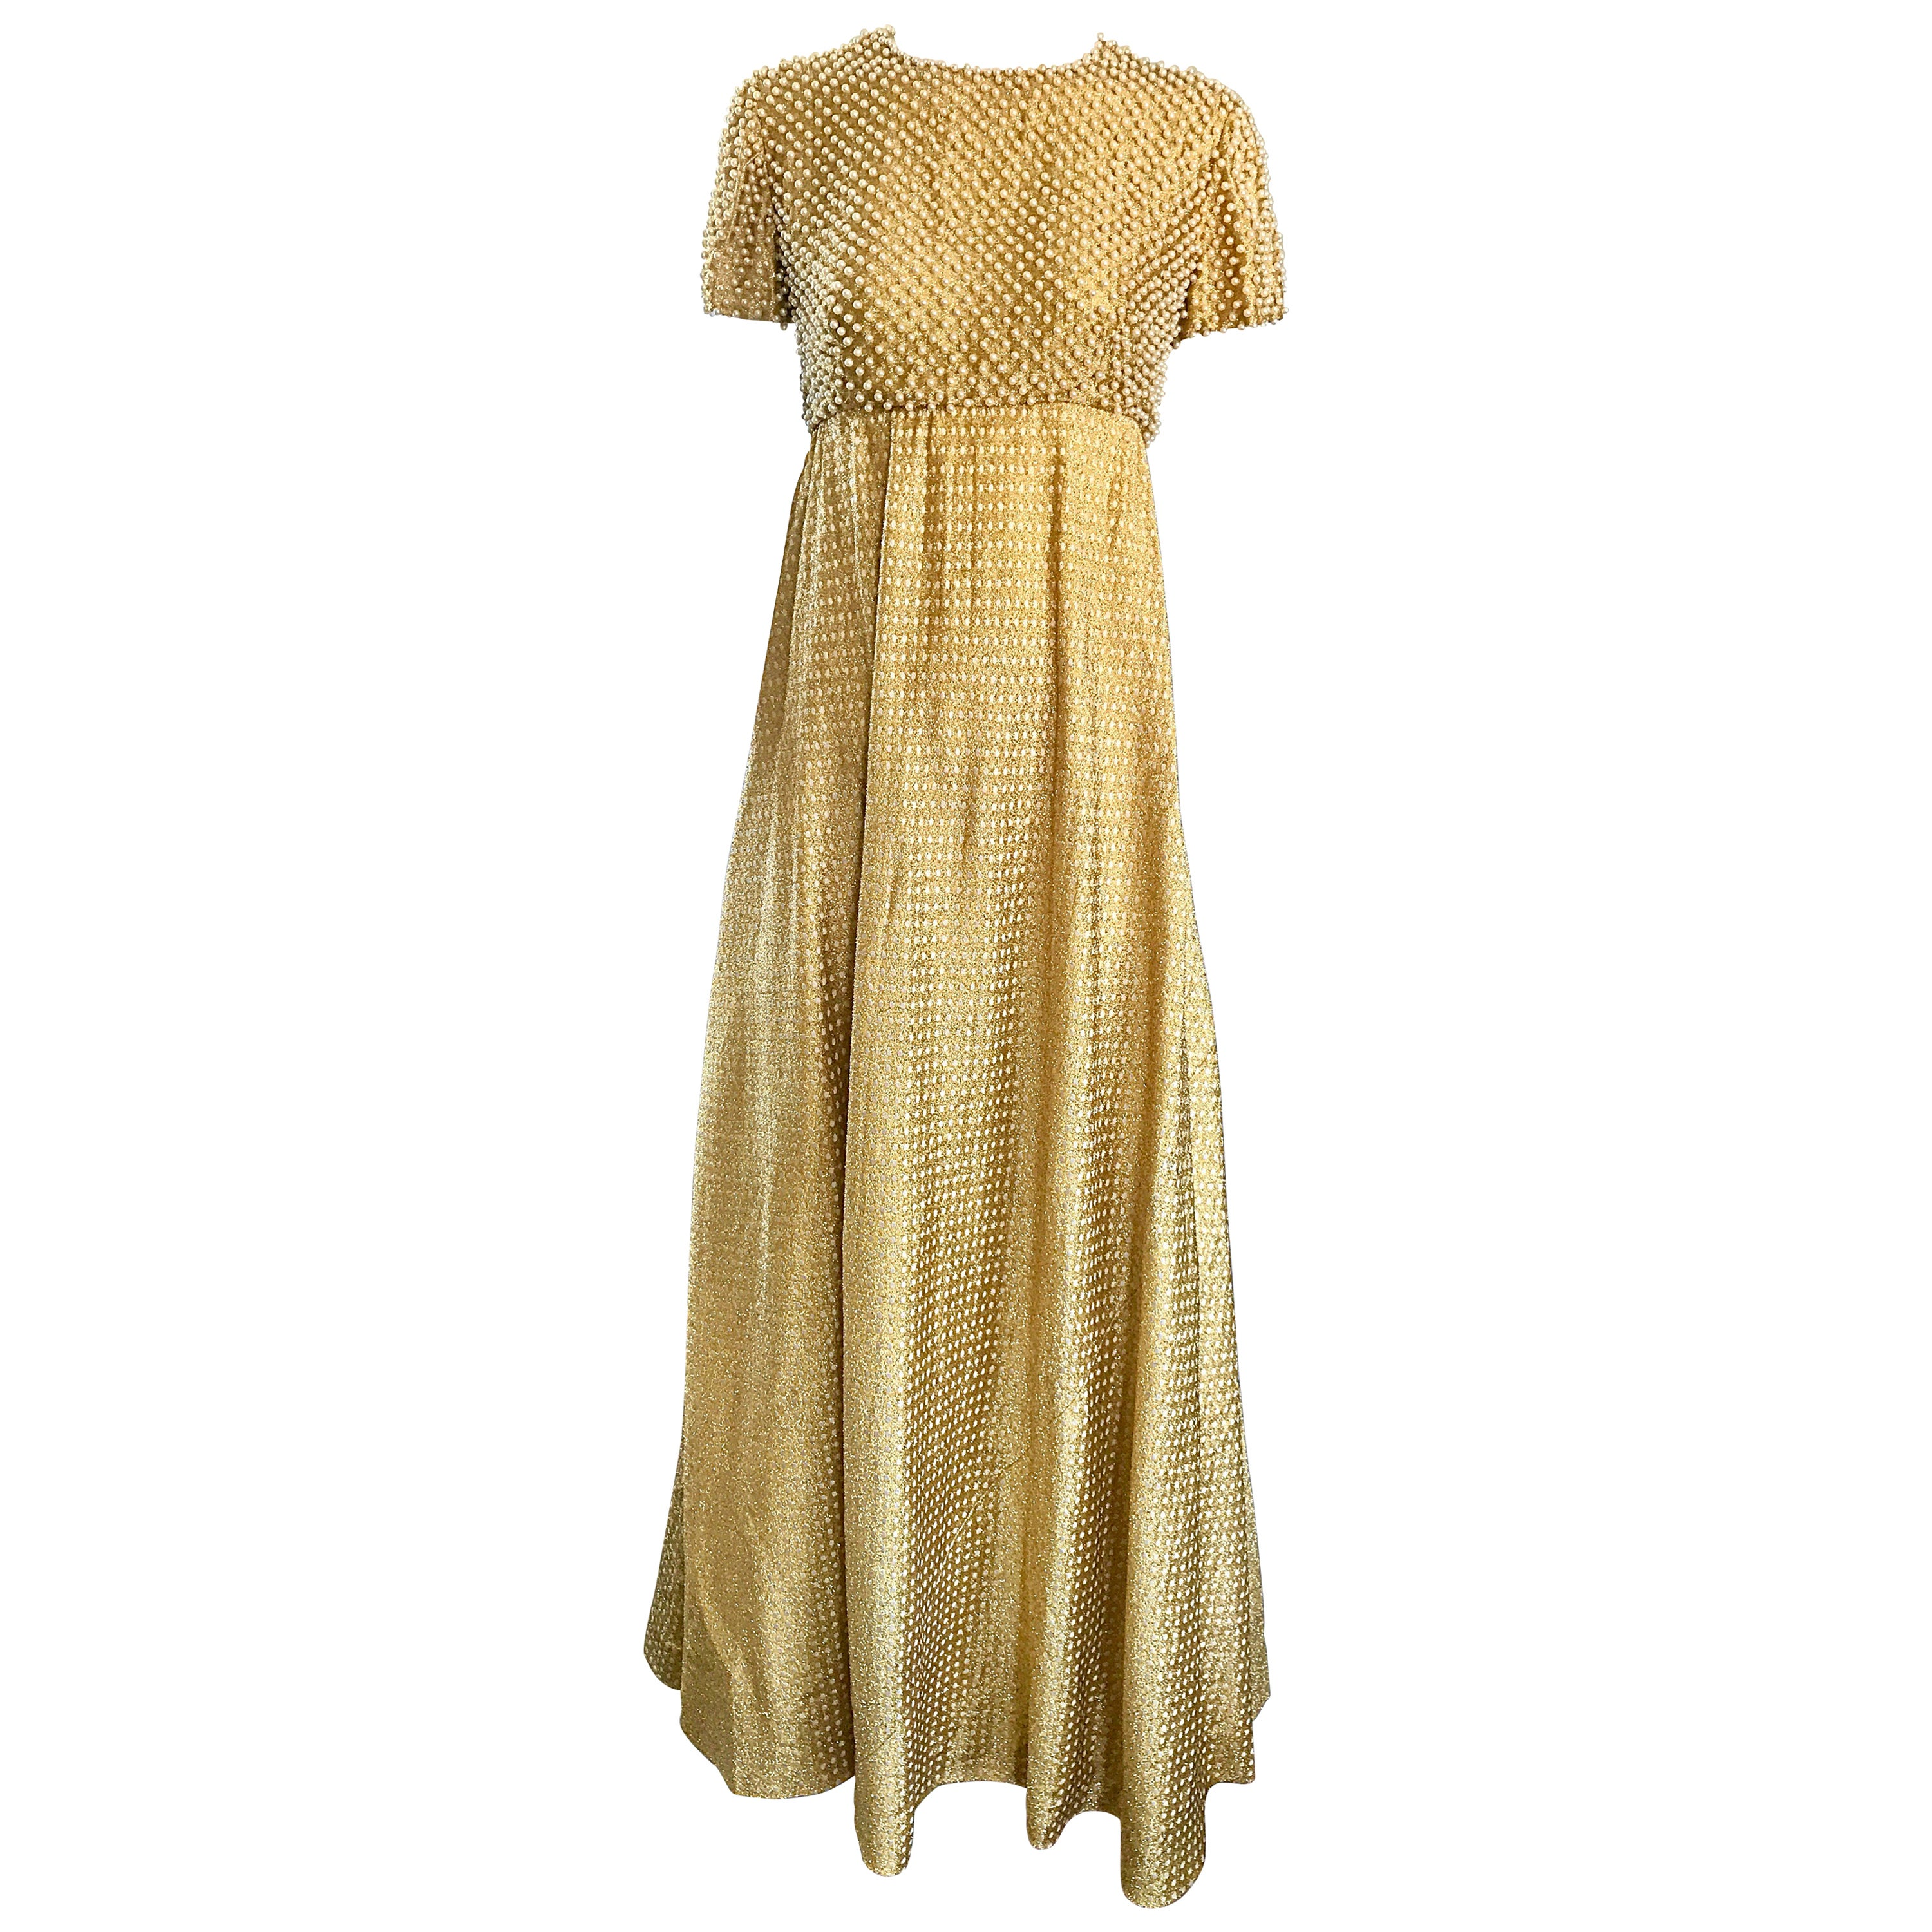 Geoffrey Beene 1960s Pearl Encrusted Gold Metallic Rare Vintage 60s Evening Gown